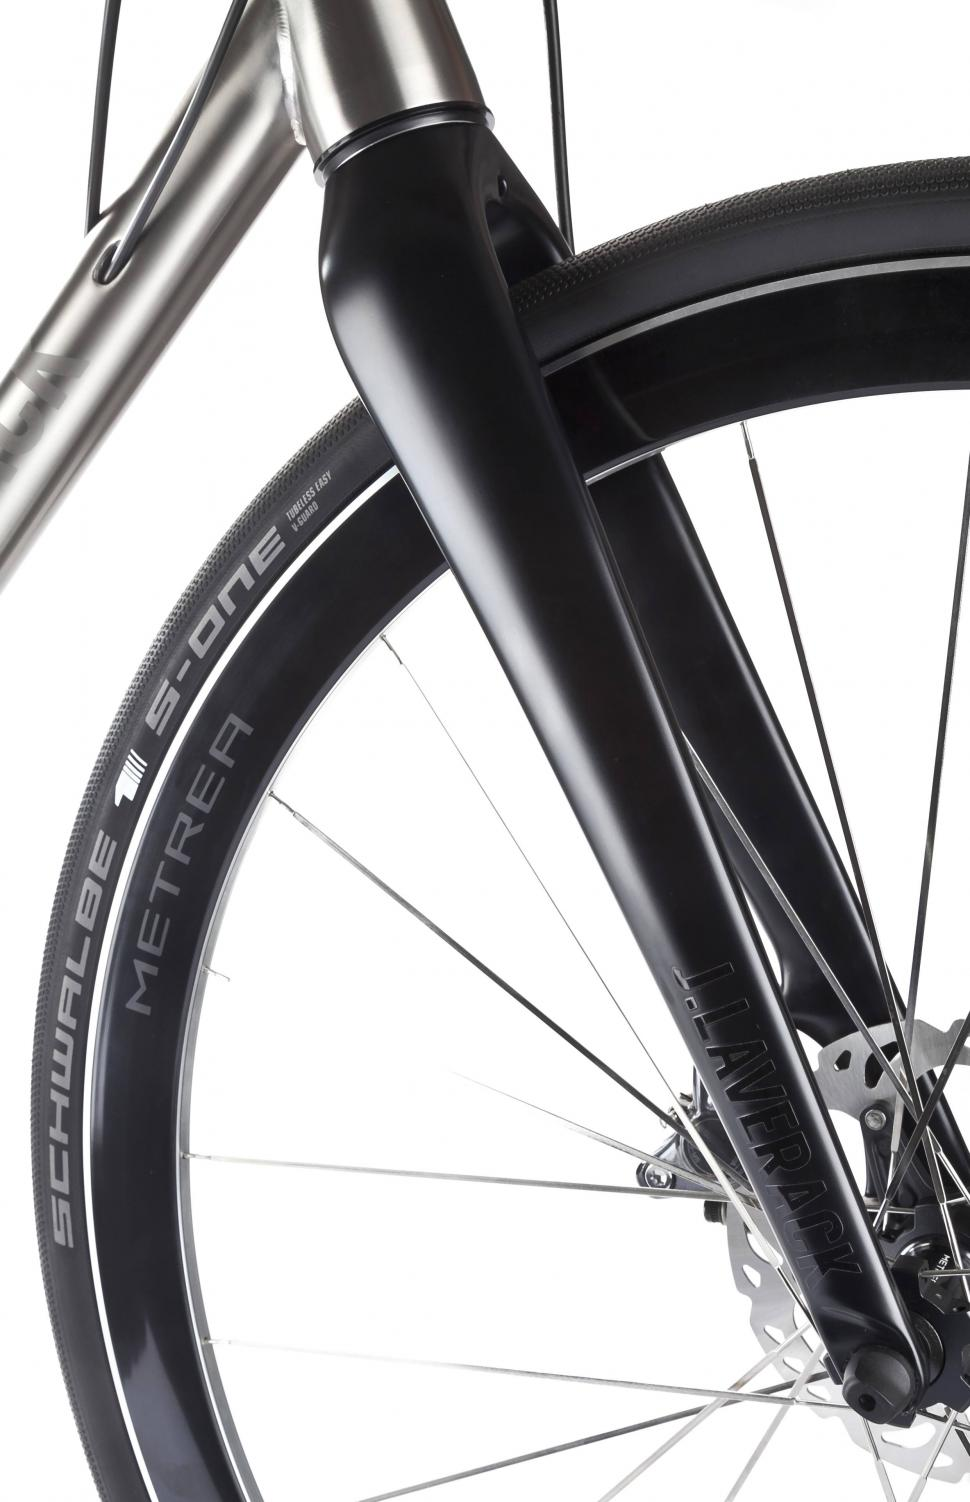 J Laverack targets urban cyclists with new Metrea-equipped